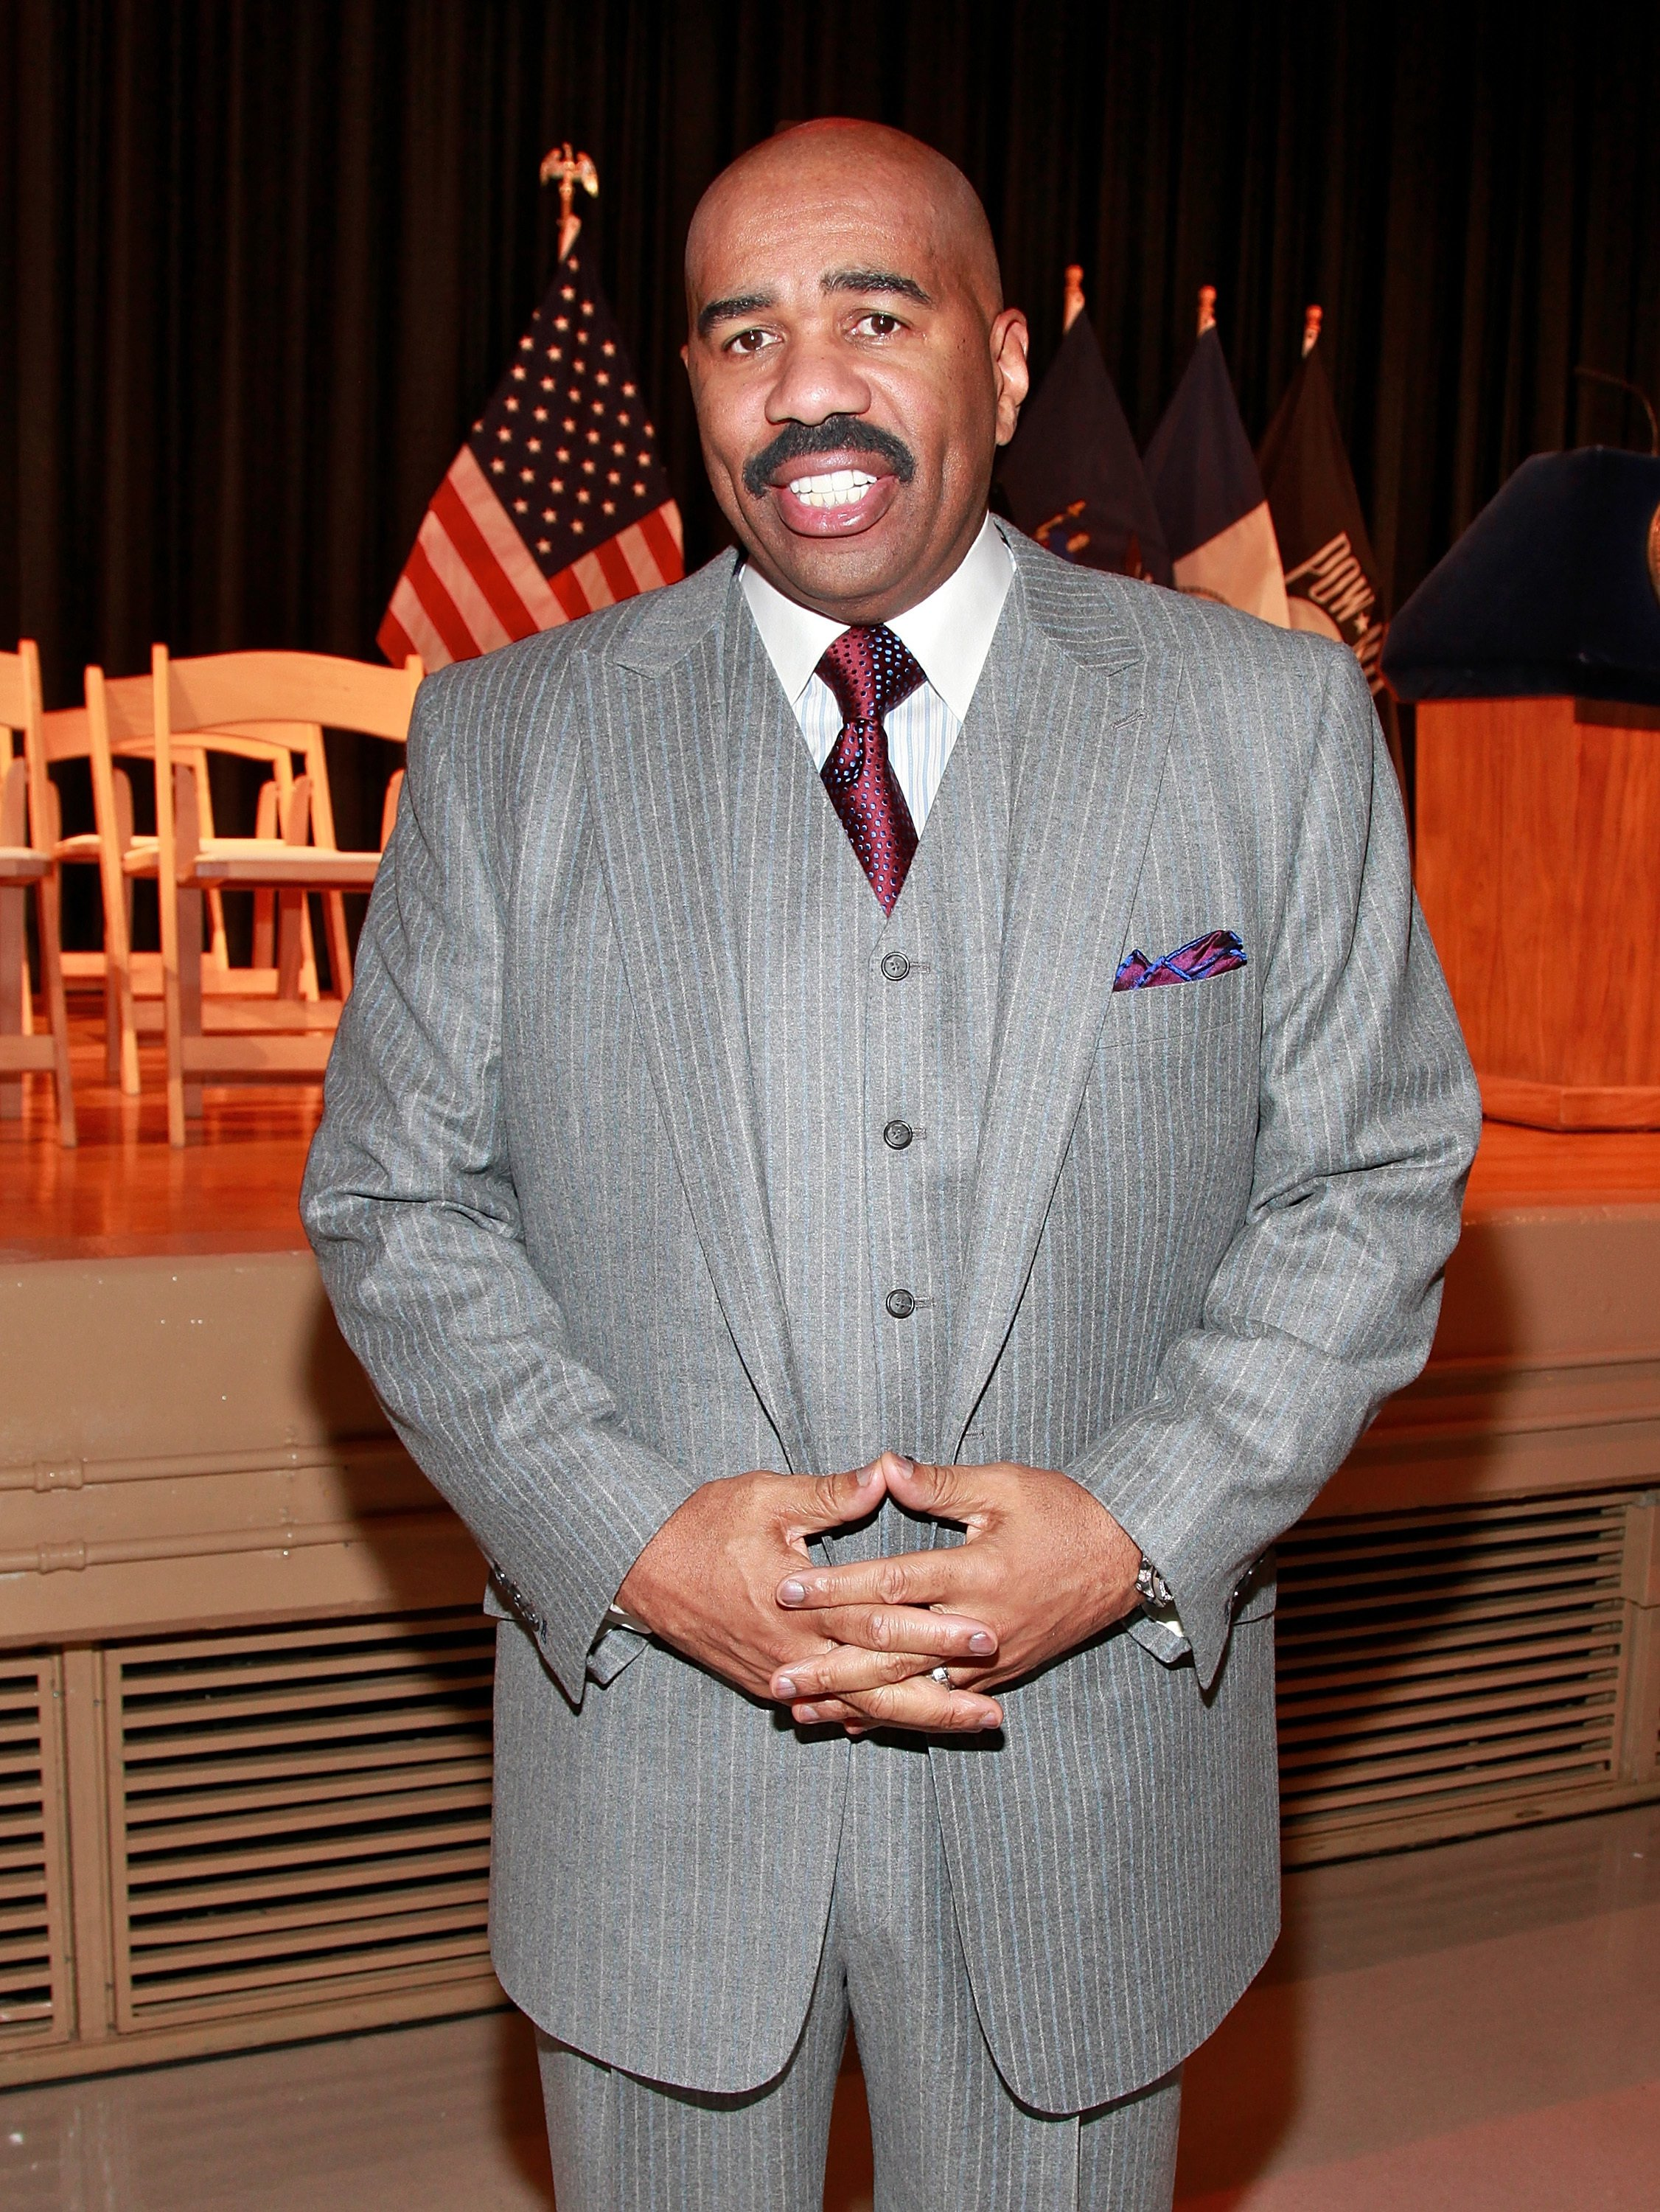 Steve Harvey attends the NYC Service Mentor It Forward Program breakfast reception in honor of Martin Luther King Jr. Day at Martin Luther King High School on January 17, 2011 in New York City | Photo: Getty Images